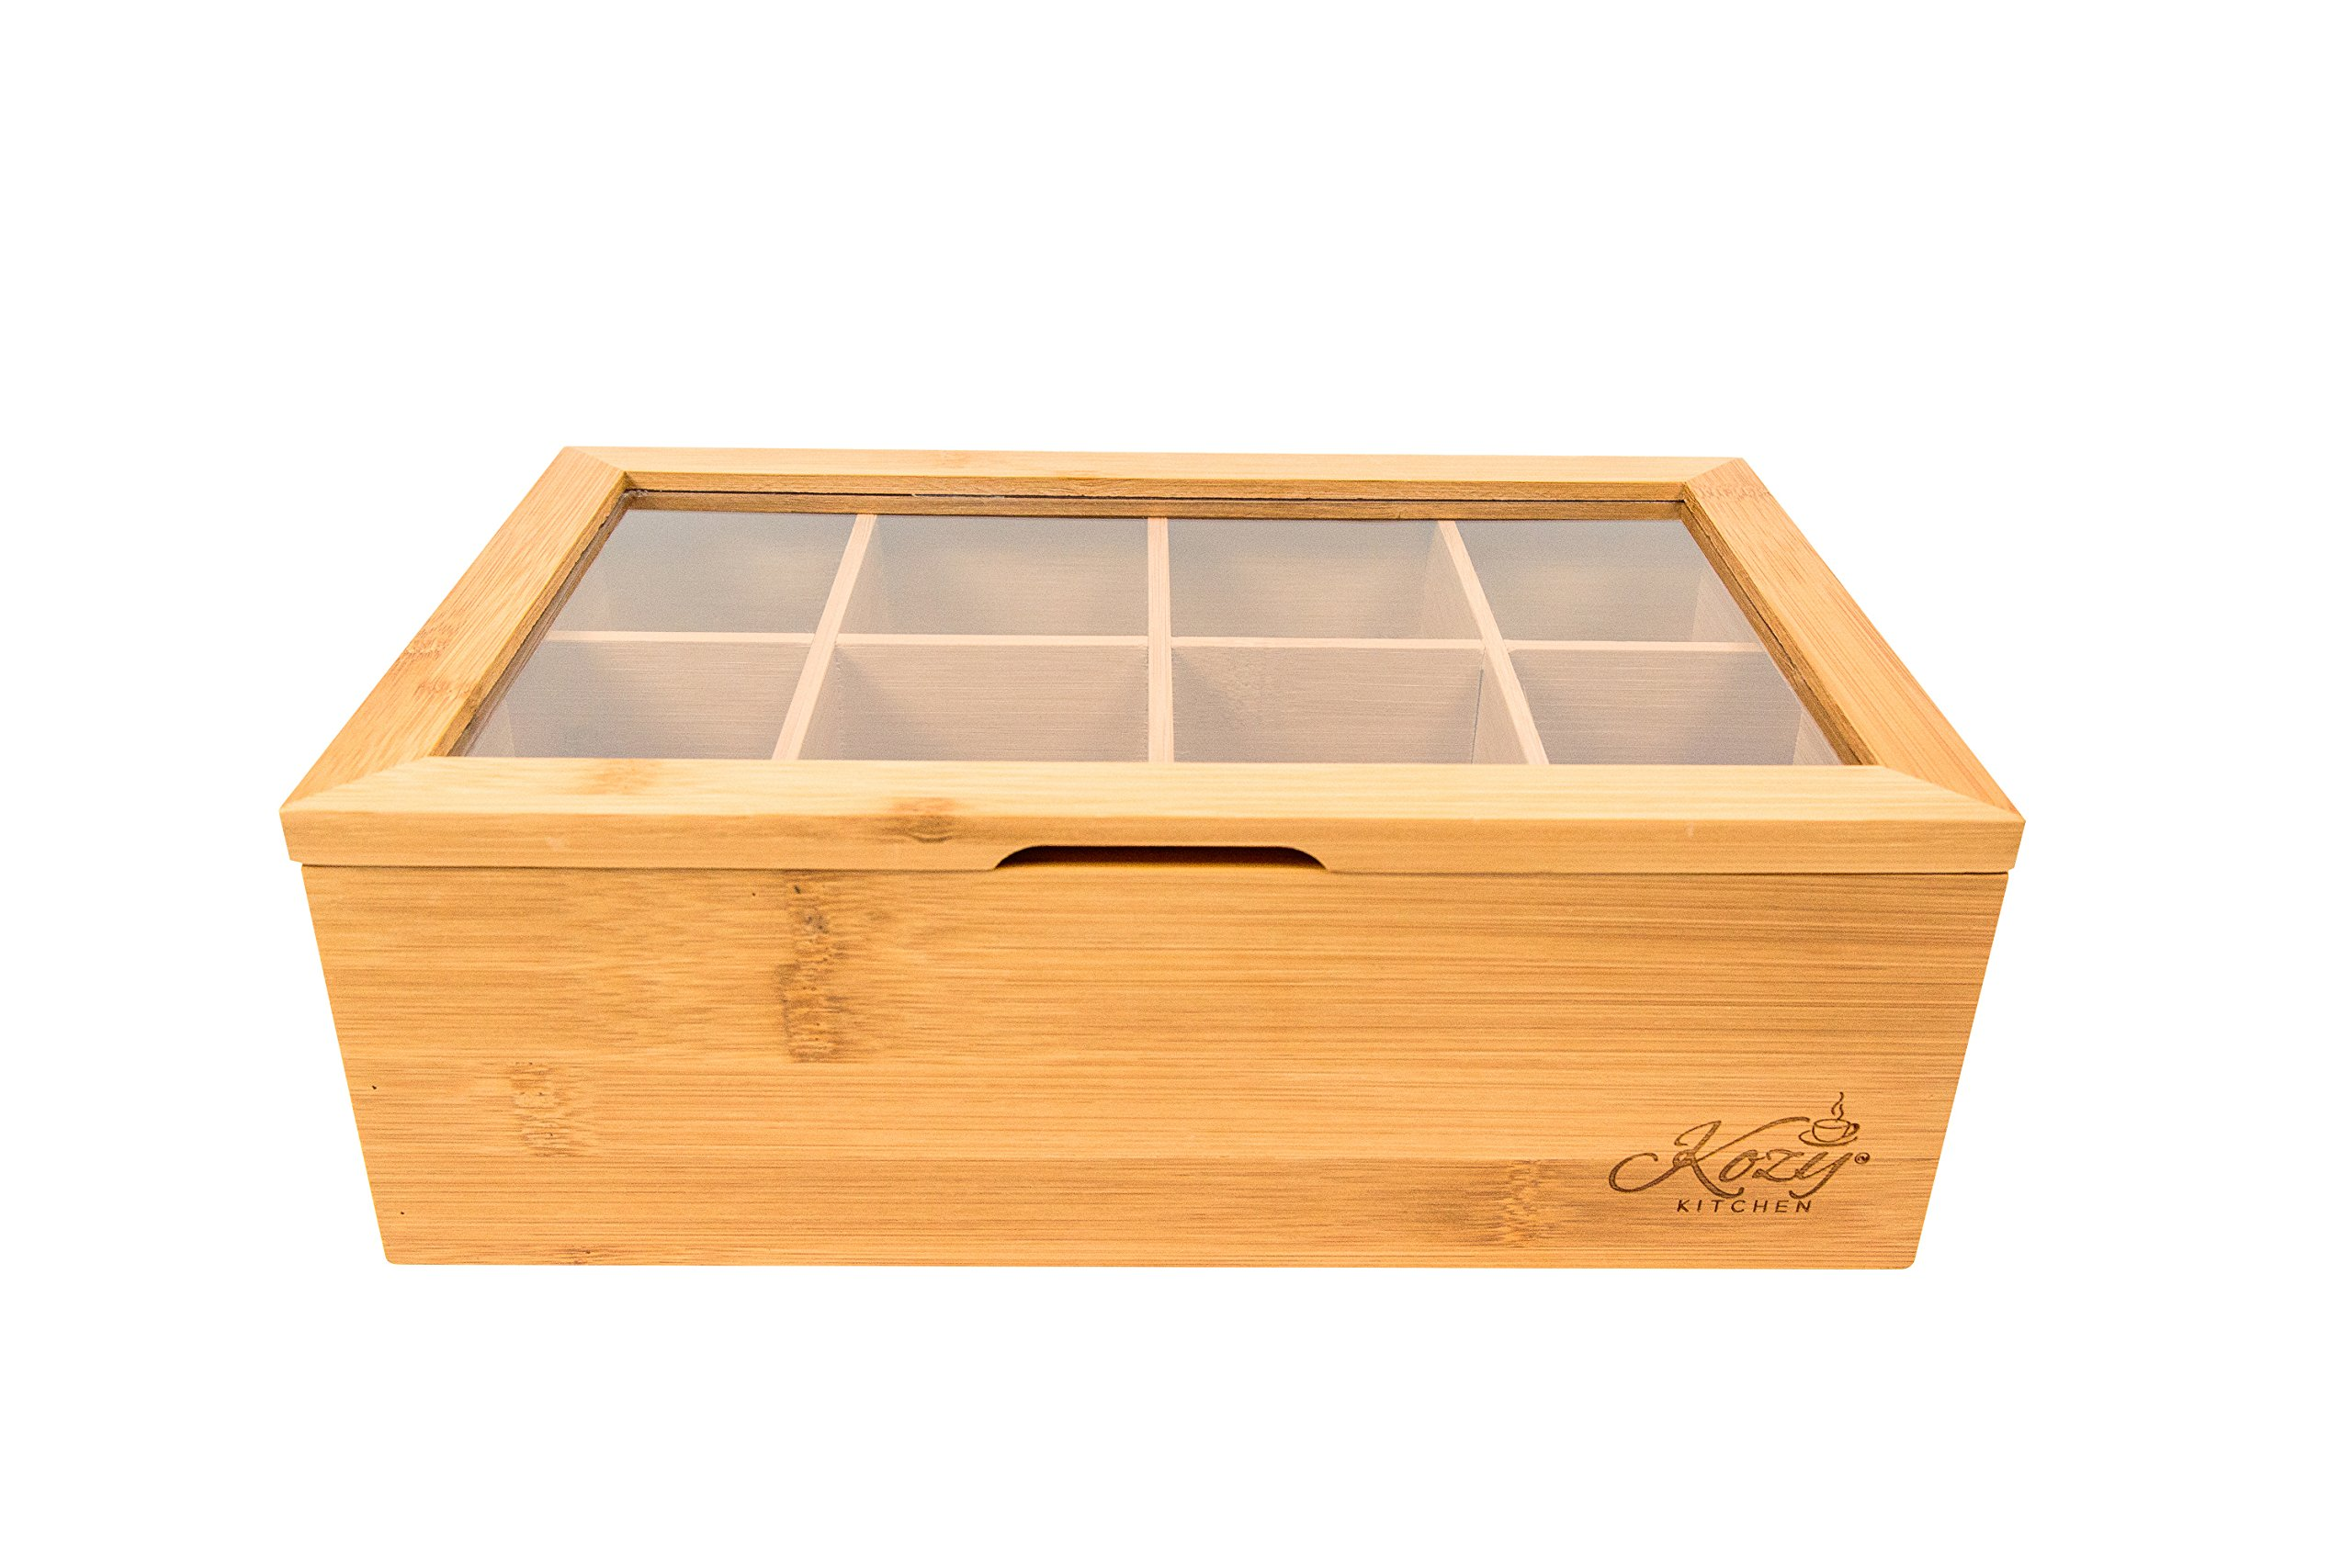 Bamboo Tea Box Storage Organizer, 100% Natural Wooden Finish Tea Bag Organizer 8 Storage Compartments and Clear Shatterproof Hinged Lid by Kozy Kitchen (Image #5)